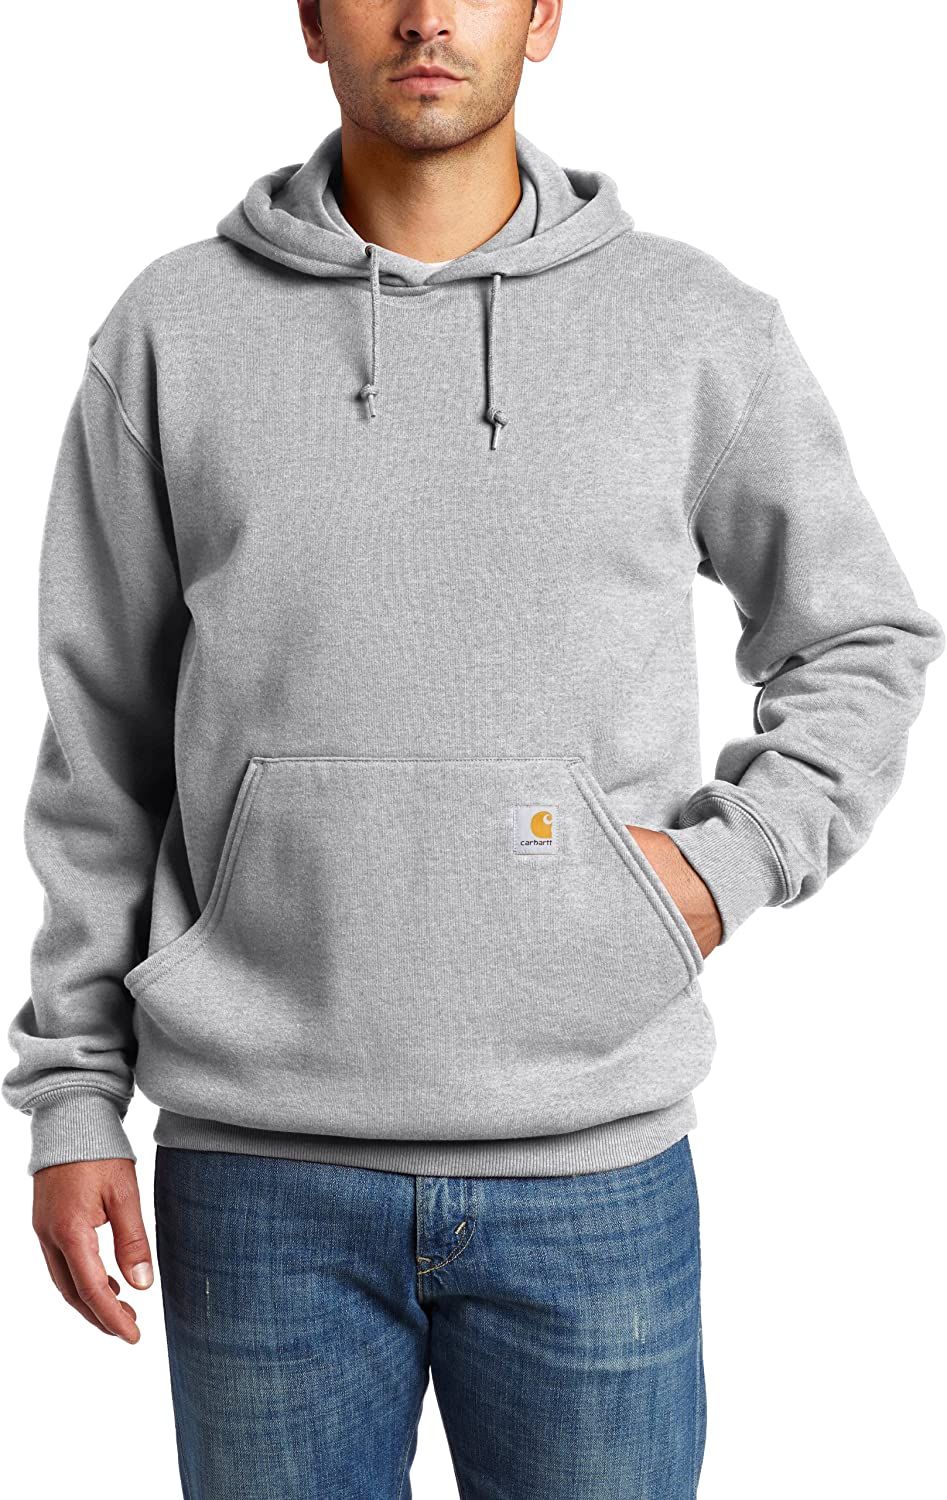 Carhartt Men's Hooded Pullover Sweatshirt Heather Gray